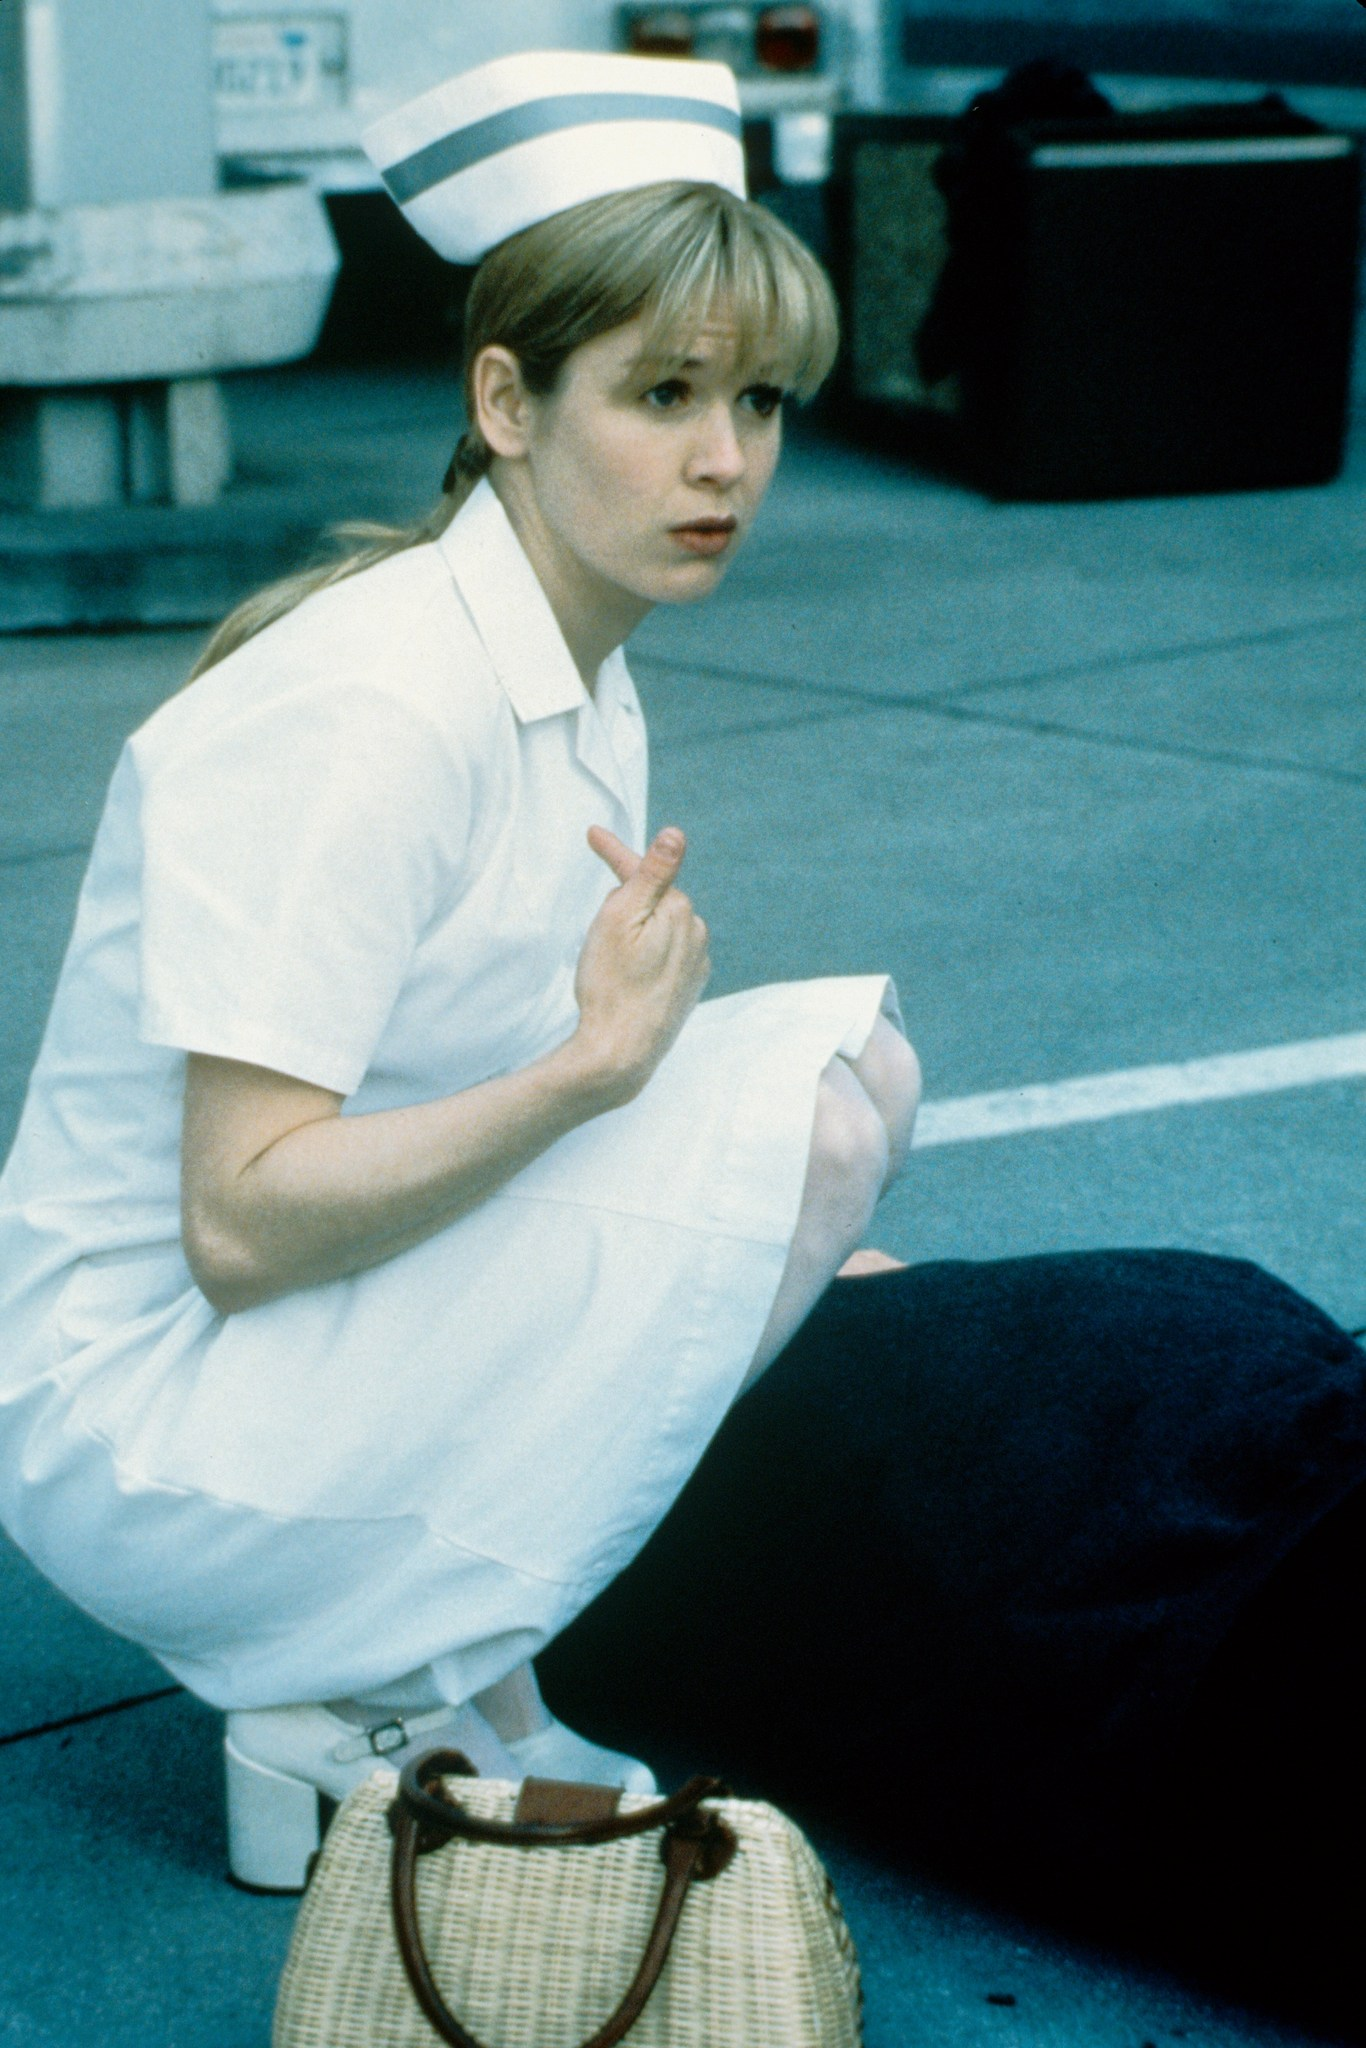 Renée Zellweger in Nurse Betty (2000)